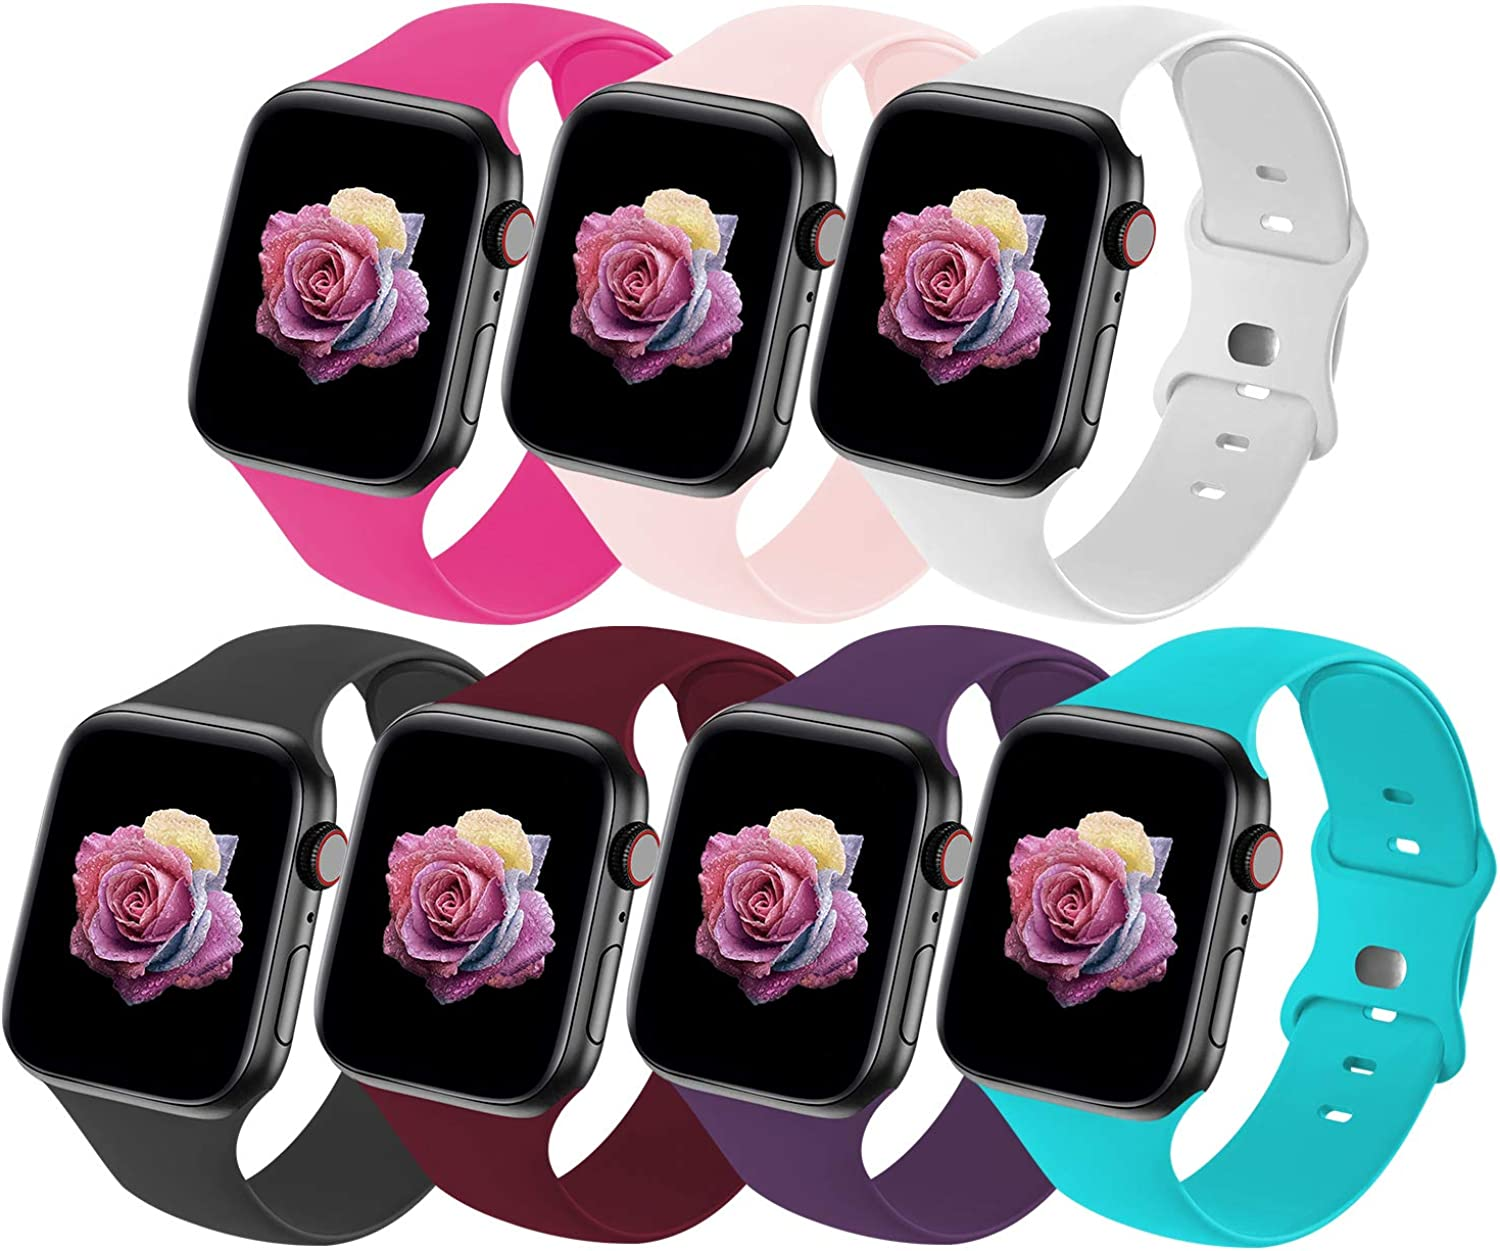 Crefort Sport Band Compatible with Apple Watch Bands 38mm 40mm 42mm 44mm for Women Men,Soft Silicone Replacement Strap Accessory Compatible for iWatch Wristbands Series 6 3 5 SE 4 2 1 S/M M/L Packs